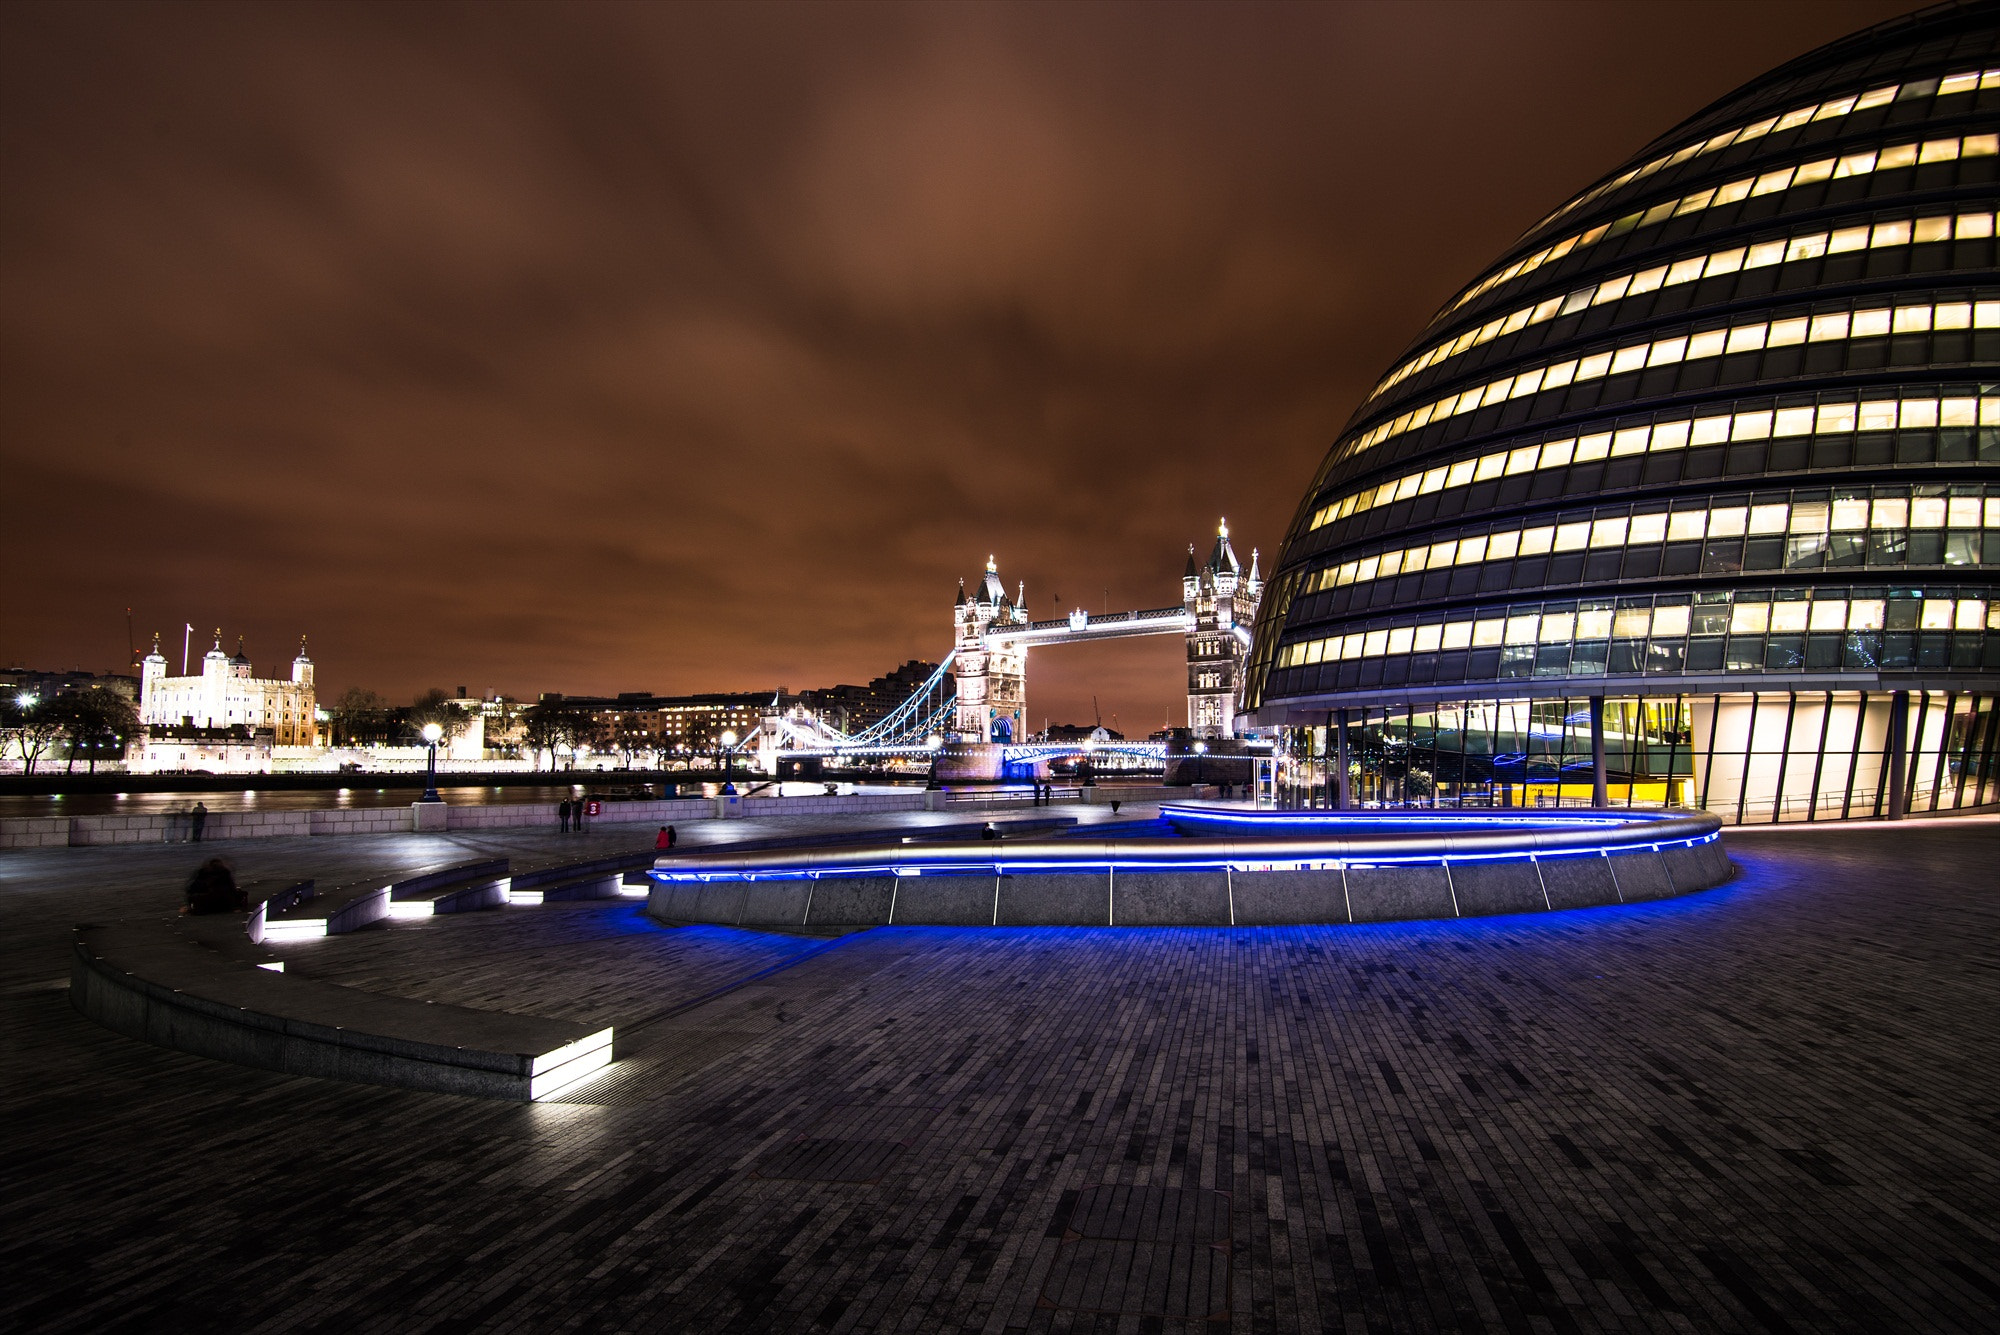 Photograph London Lights by hugh dornan on 500px